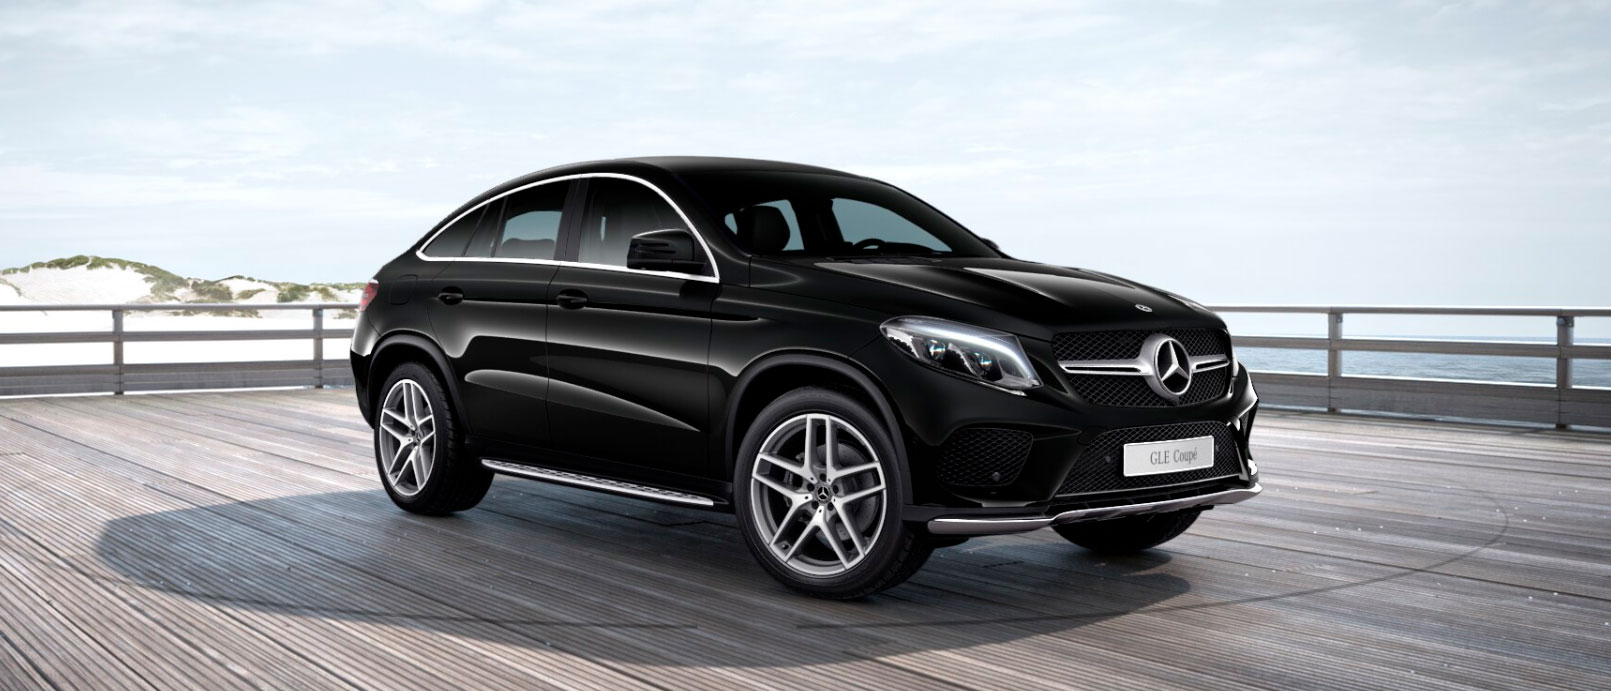 Mercedes-AMG GLE Coupe 0852611216